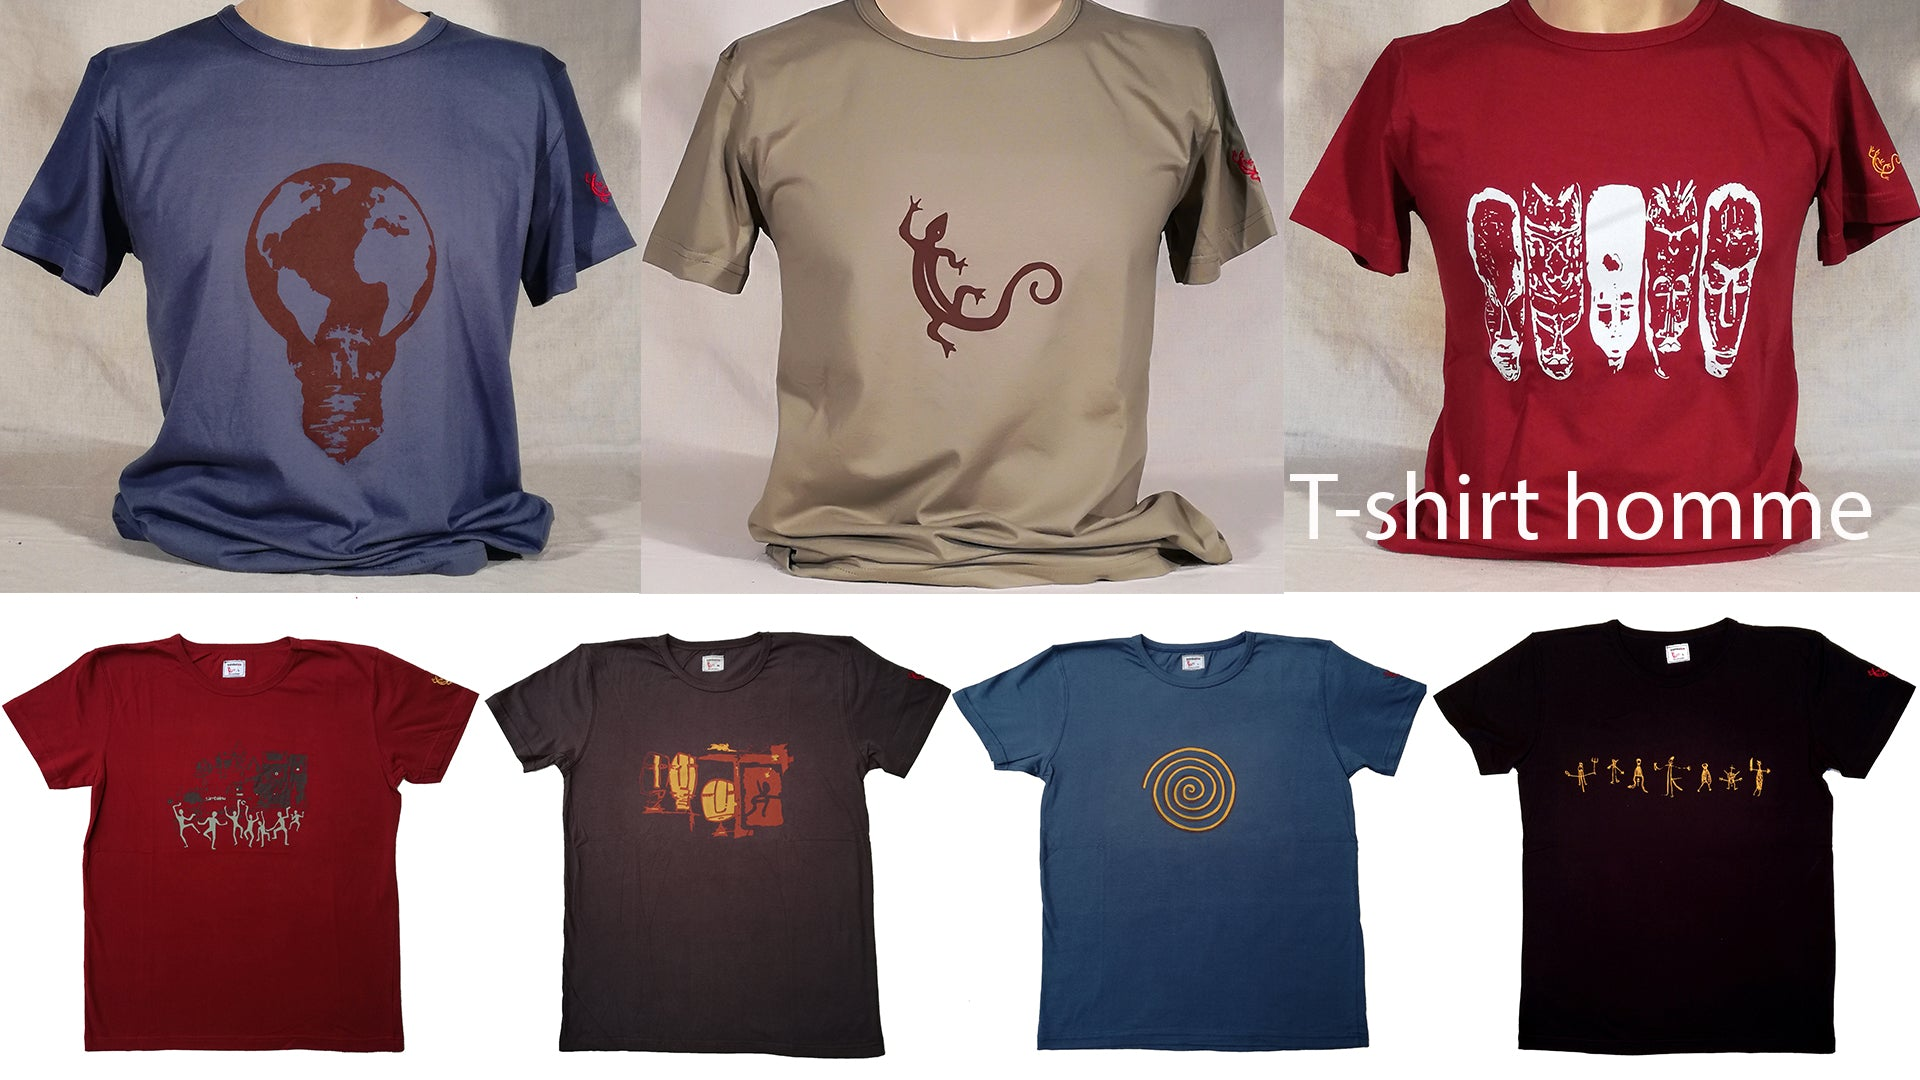 Photo collection t-shirt homme sambalou / t-shirt en coton biologique imprimé en Belgique